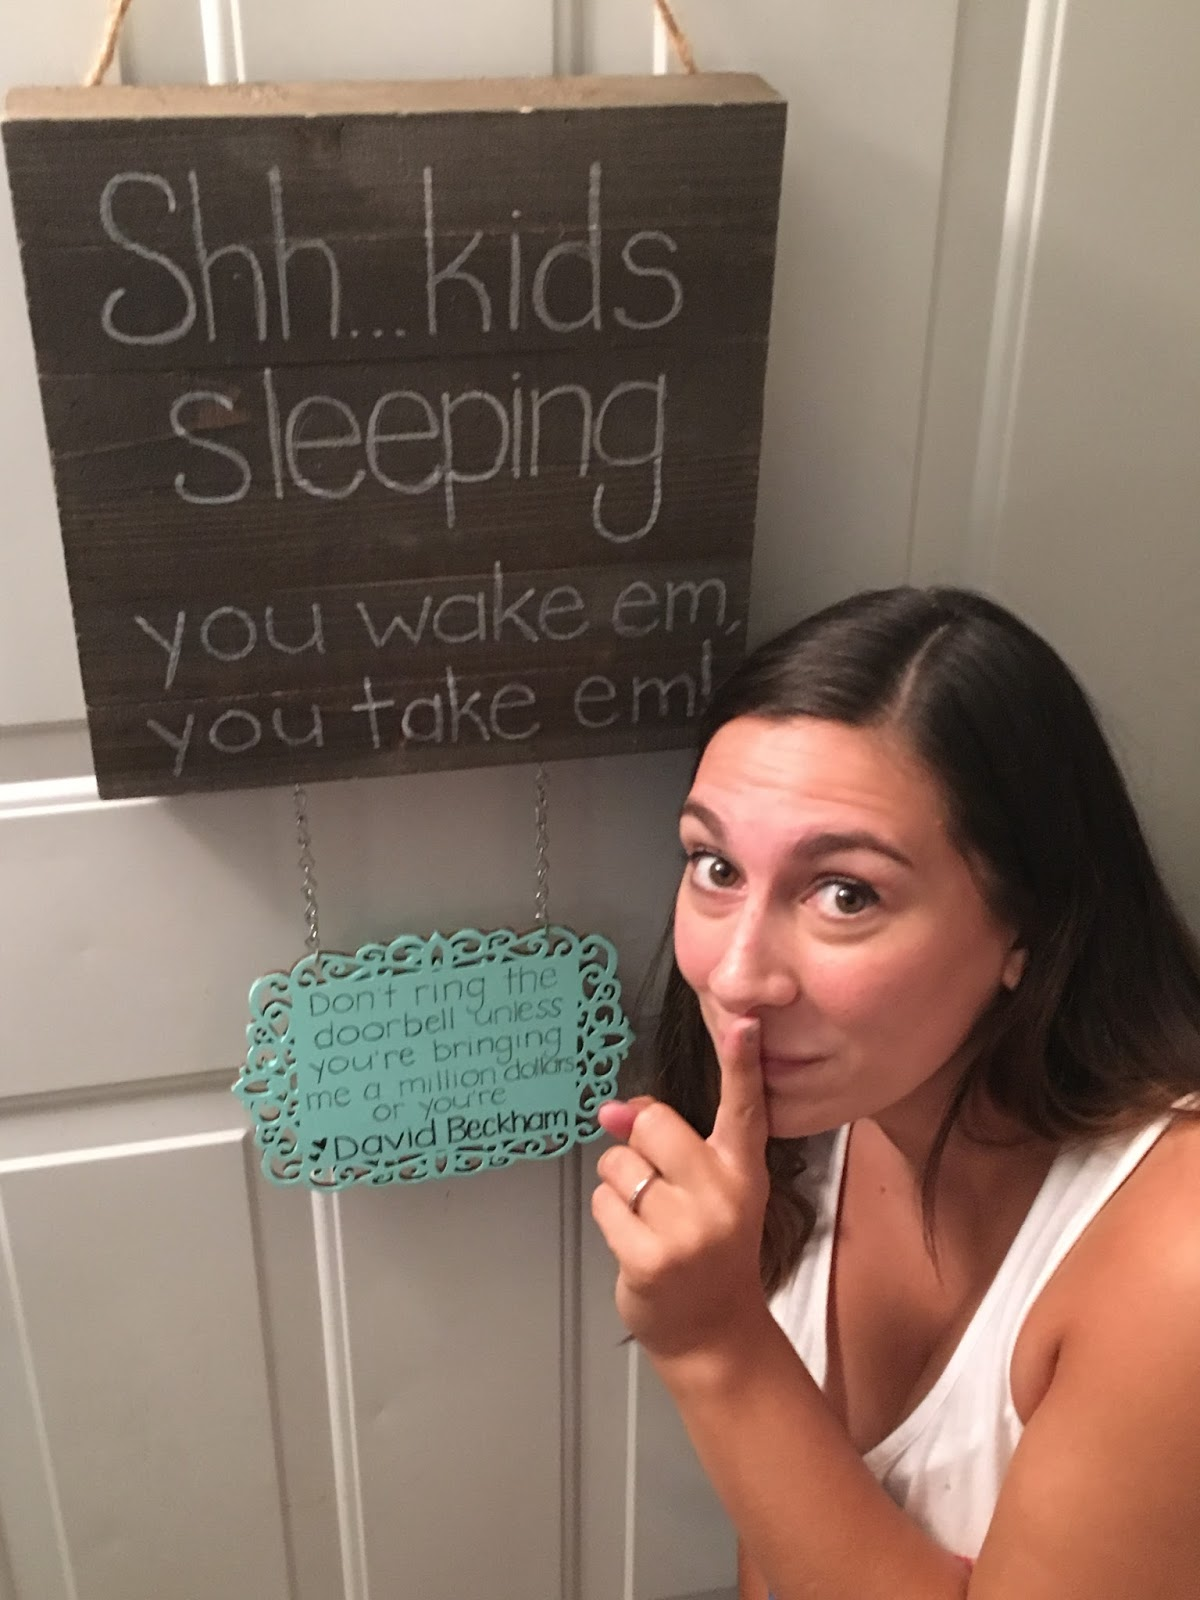 funny kid's sleeping door sign